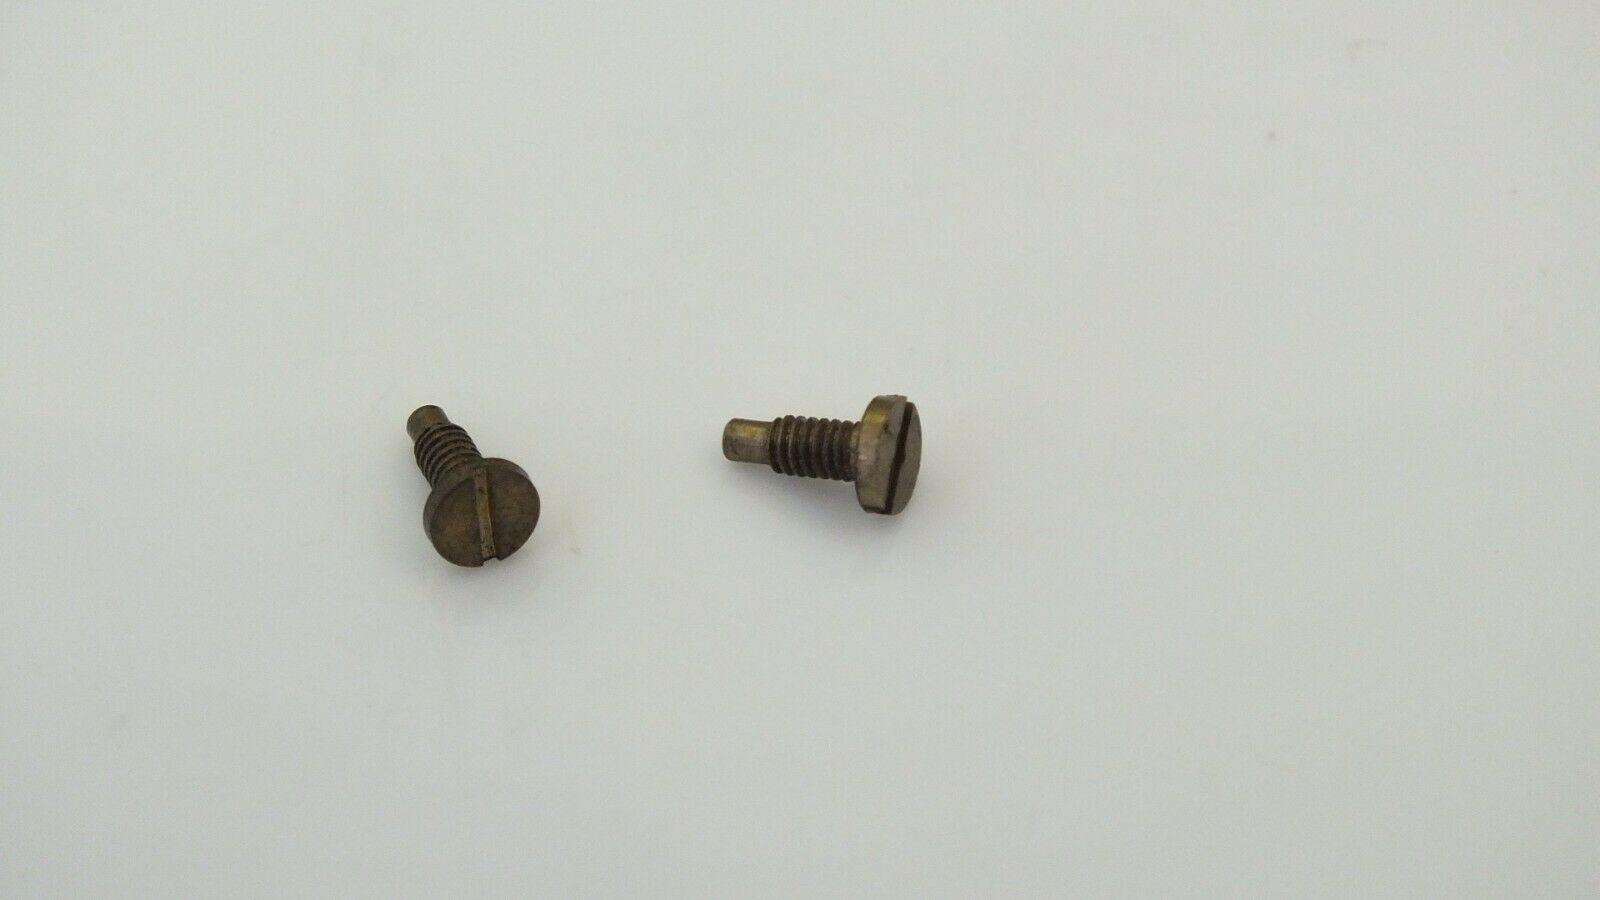 S1155 HORNBY TRIANG PACK 2 CYLINDER BLOCK SCREWS FITS 5MT     H5C